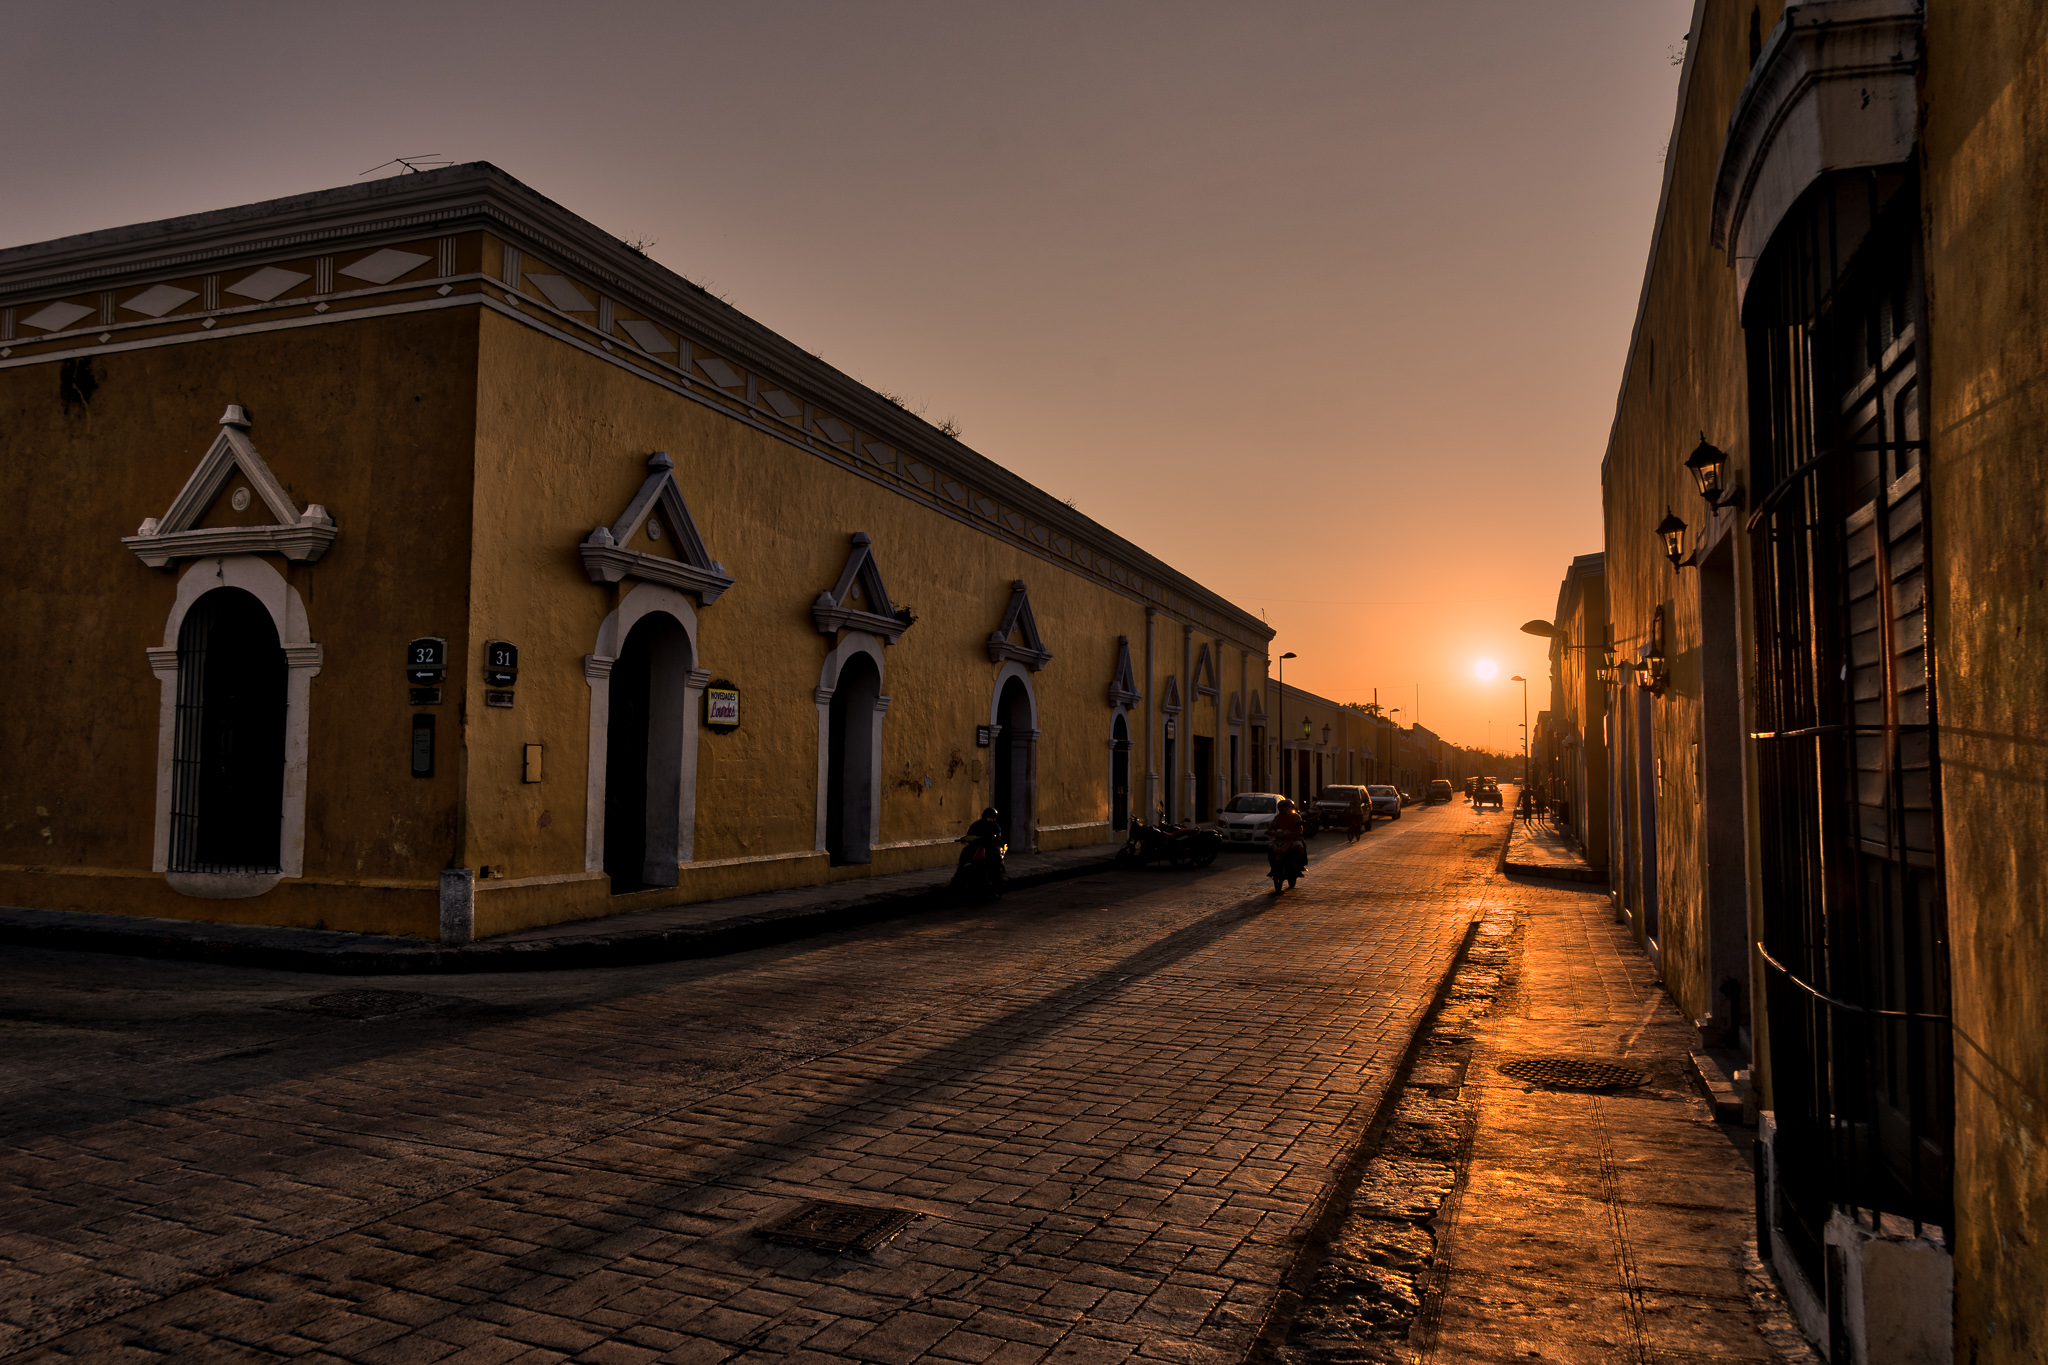 Izamal at sunset